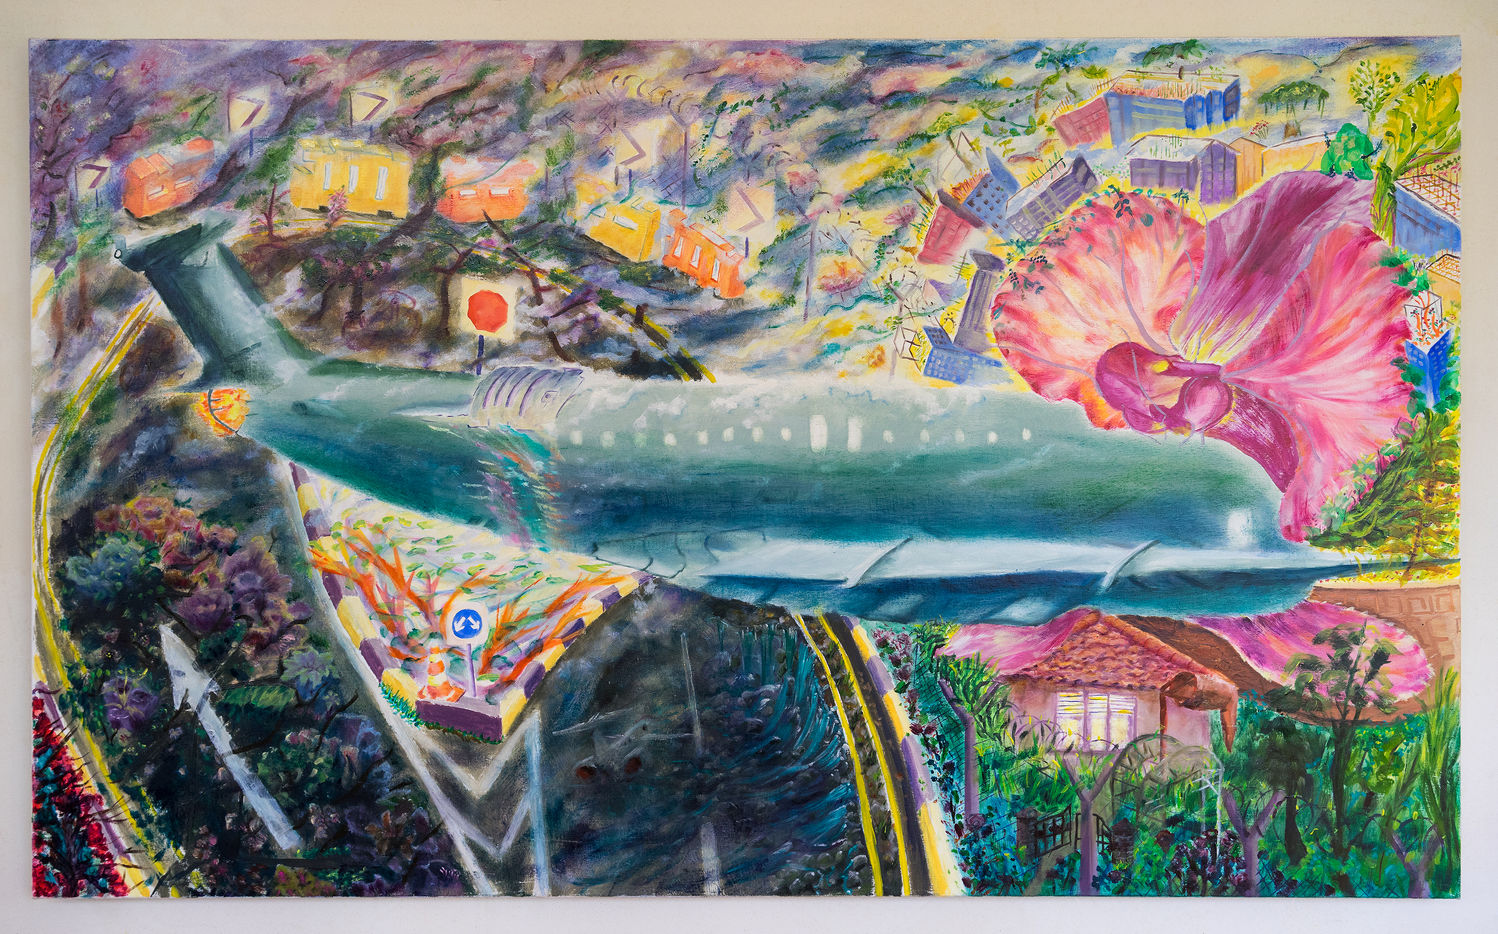 NEW Abstract and Imaginary Landscape - THE EDGE SINGAPORE